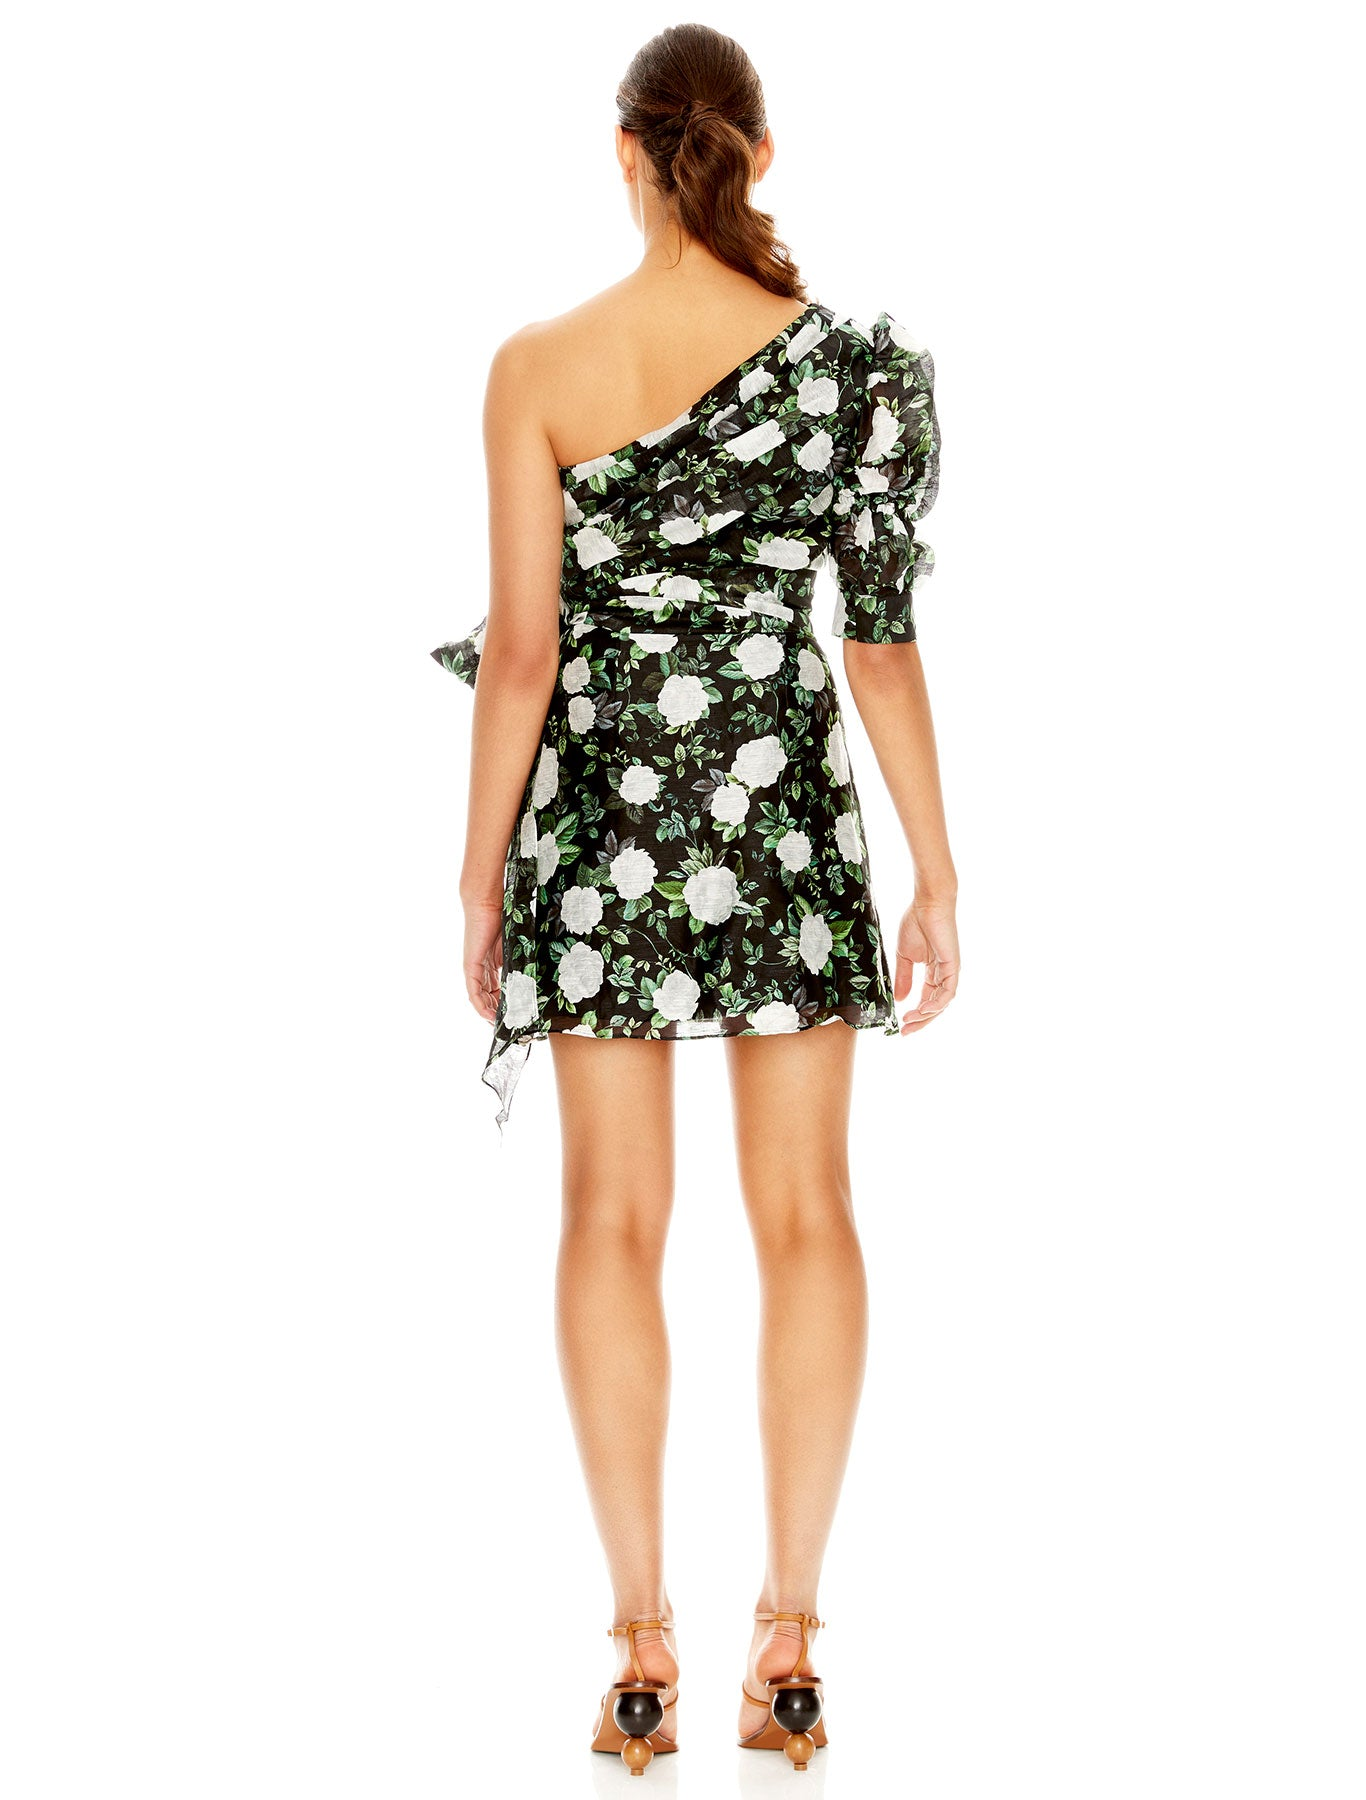 TROPO DREAMS MINI DRESS